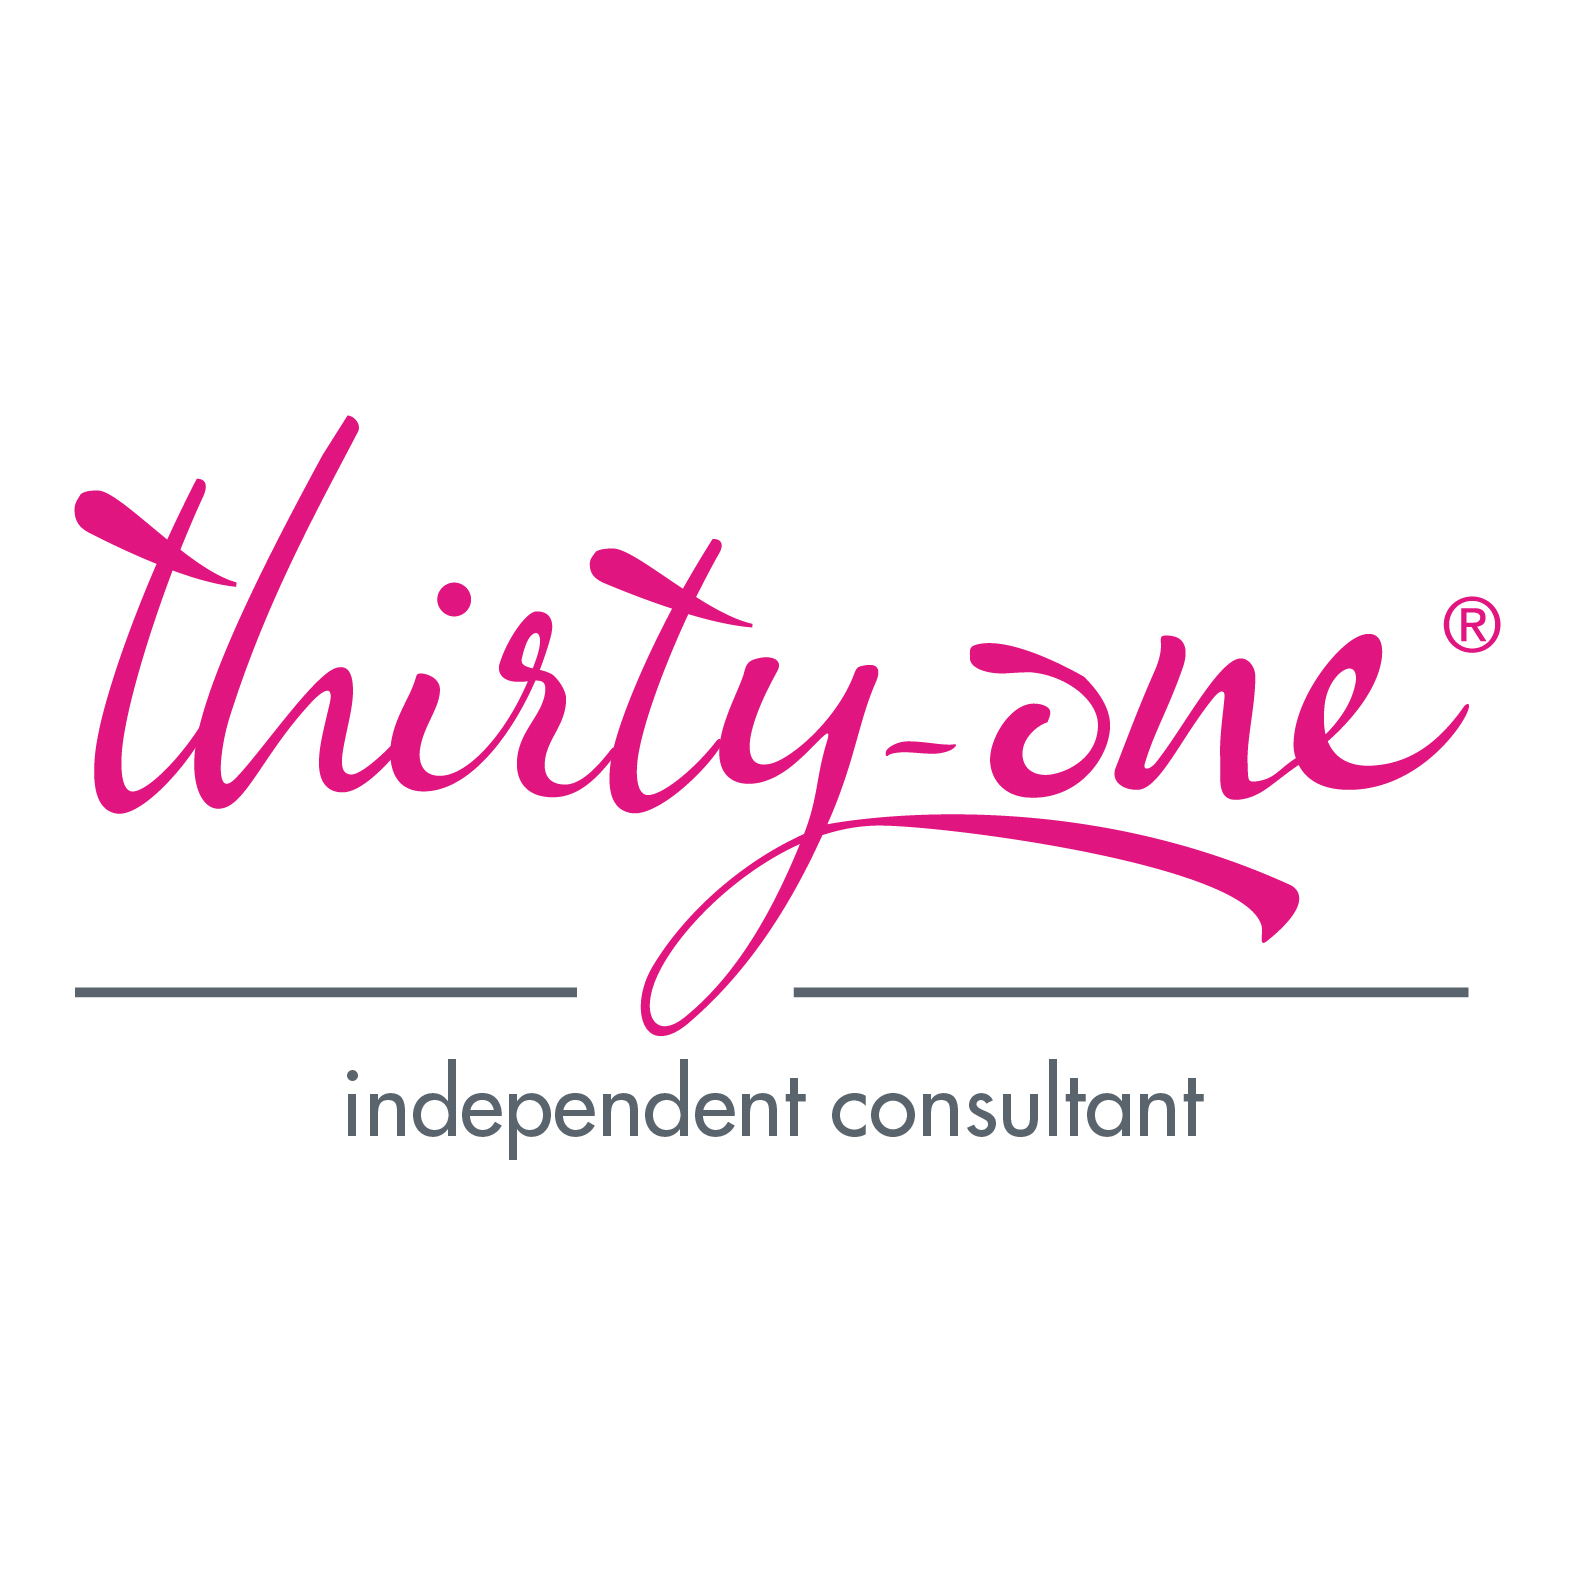 Thirty-one - logo